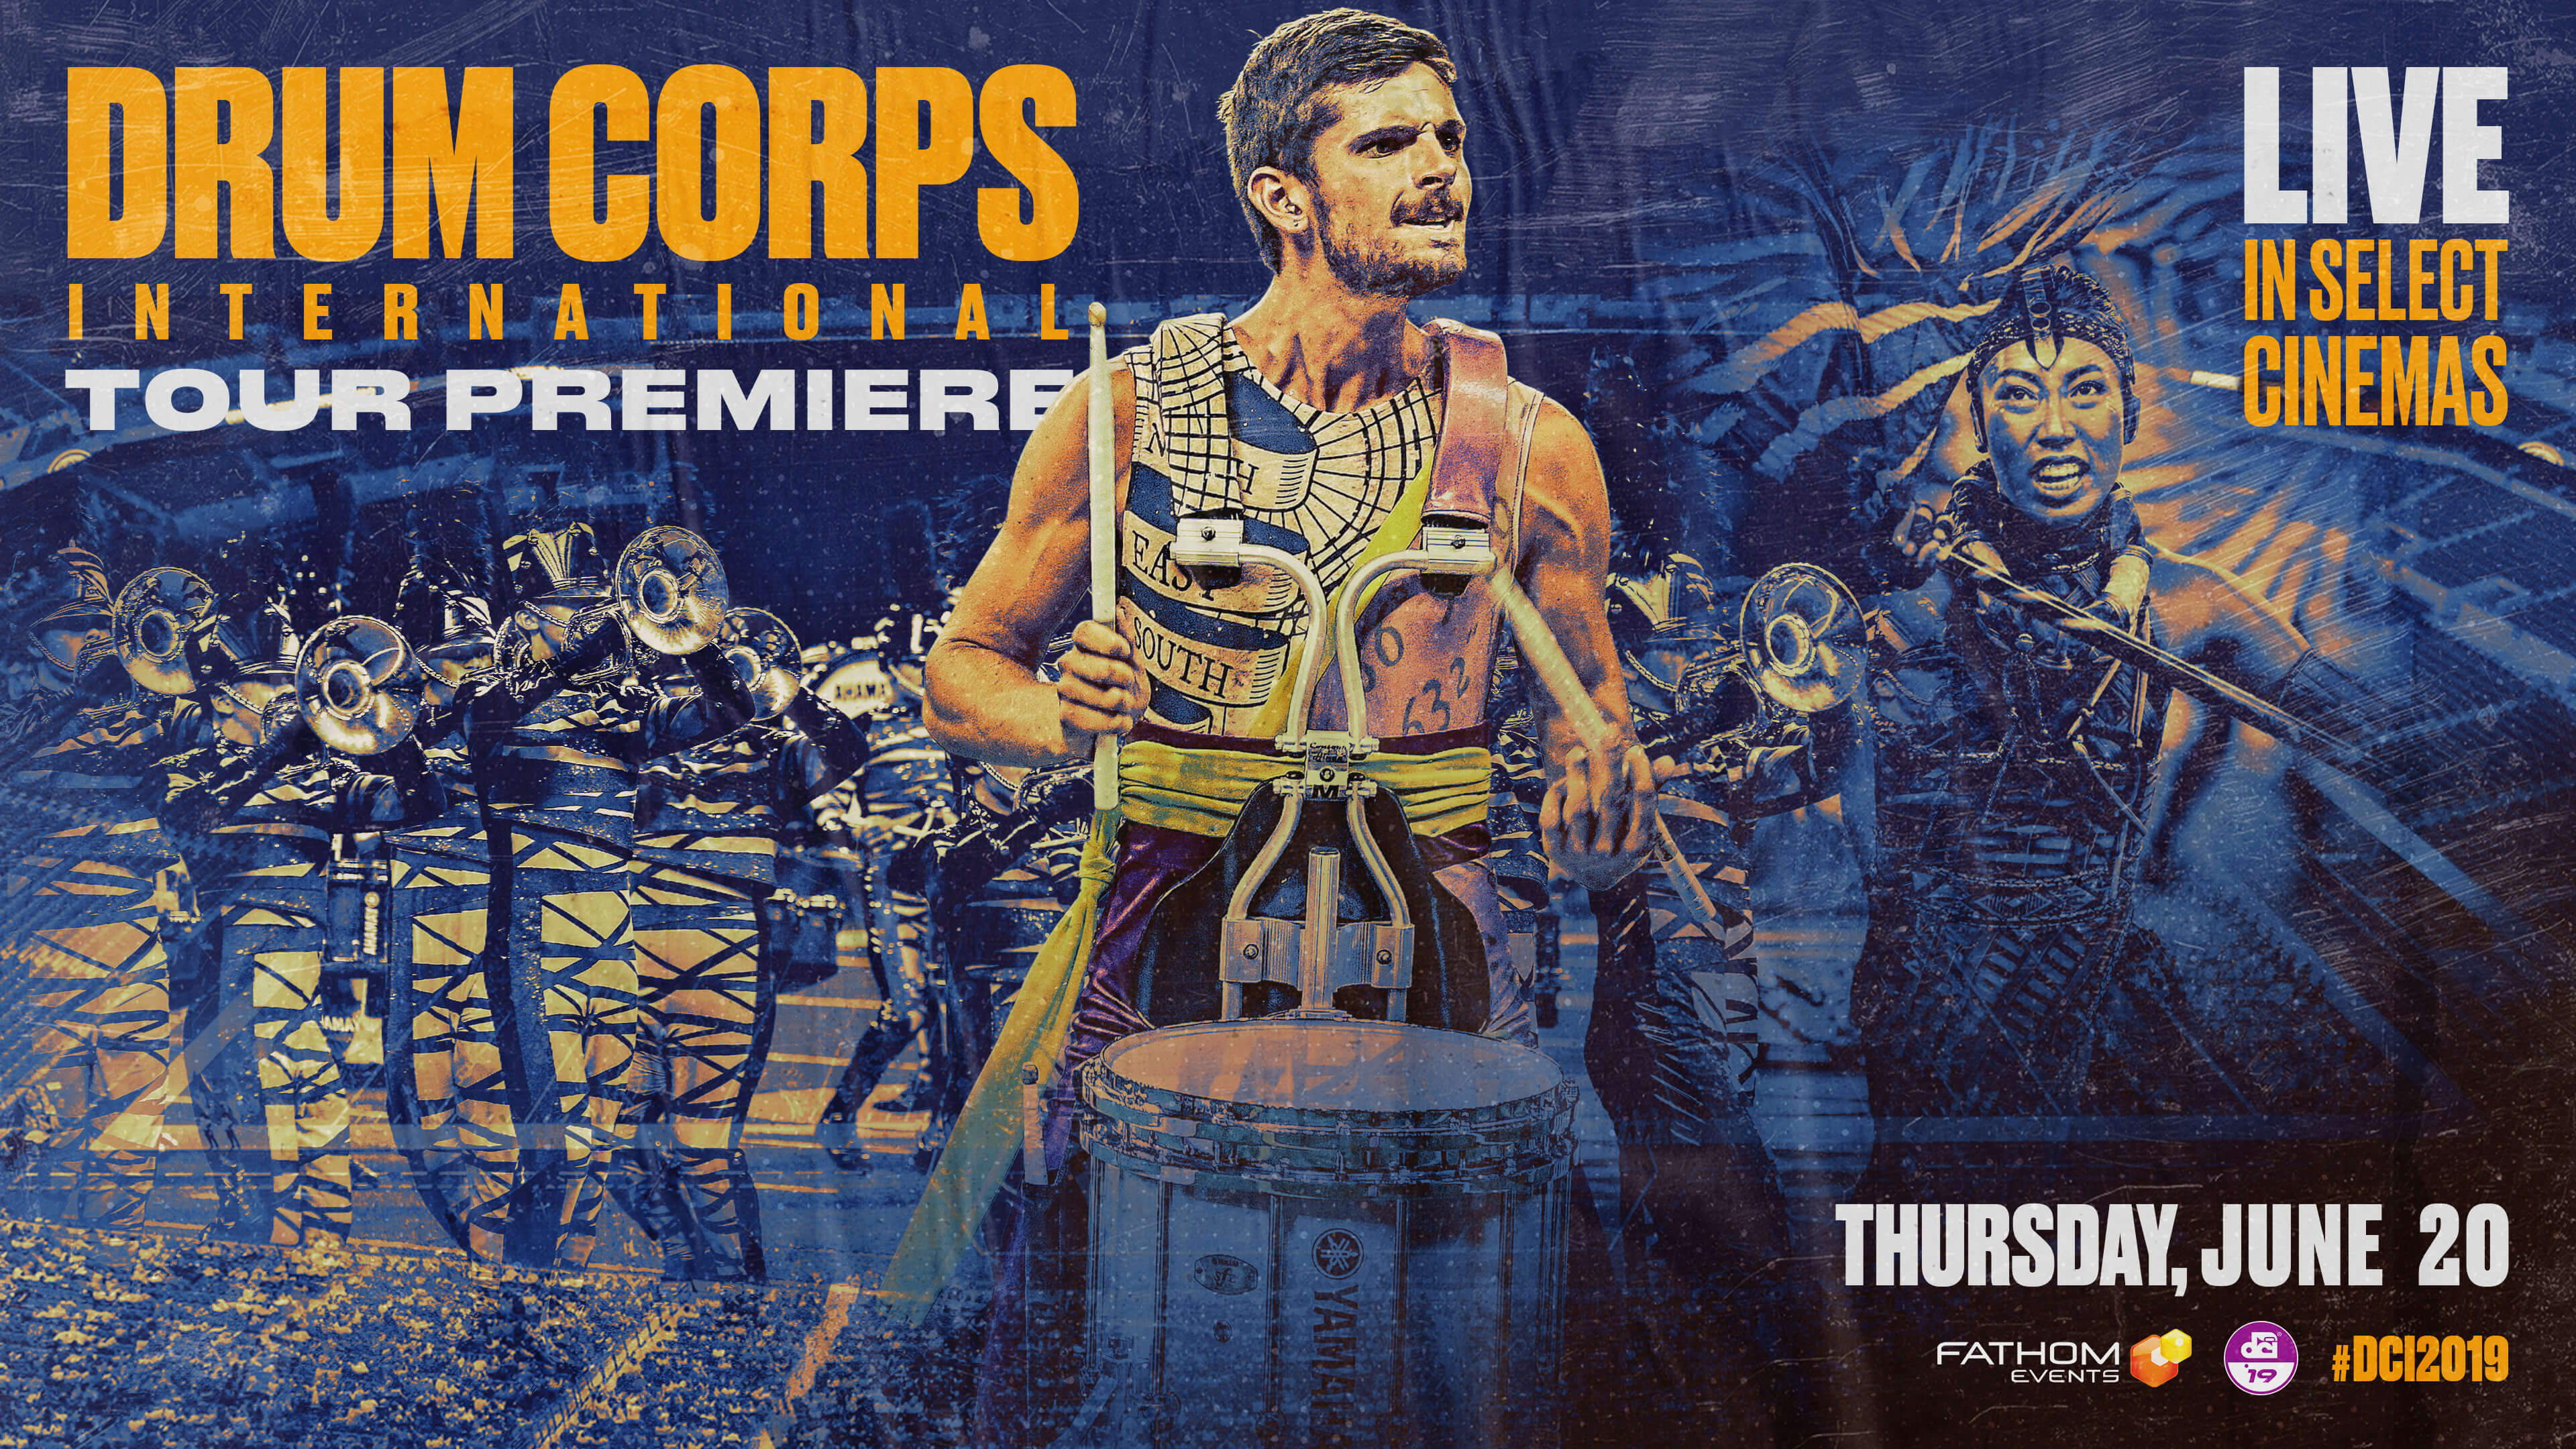 Drum Corps at the Cinema: 2019 DCI Tour Premiere